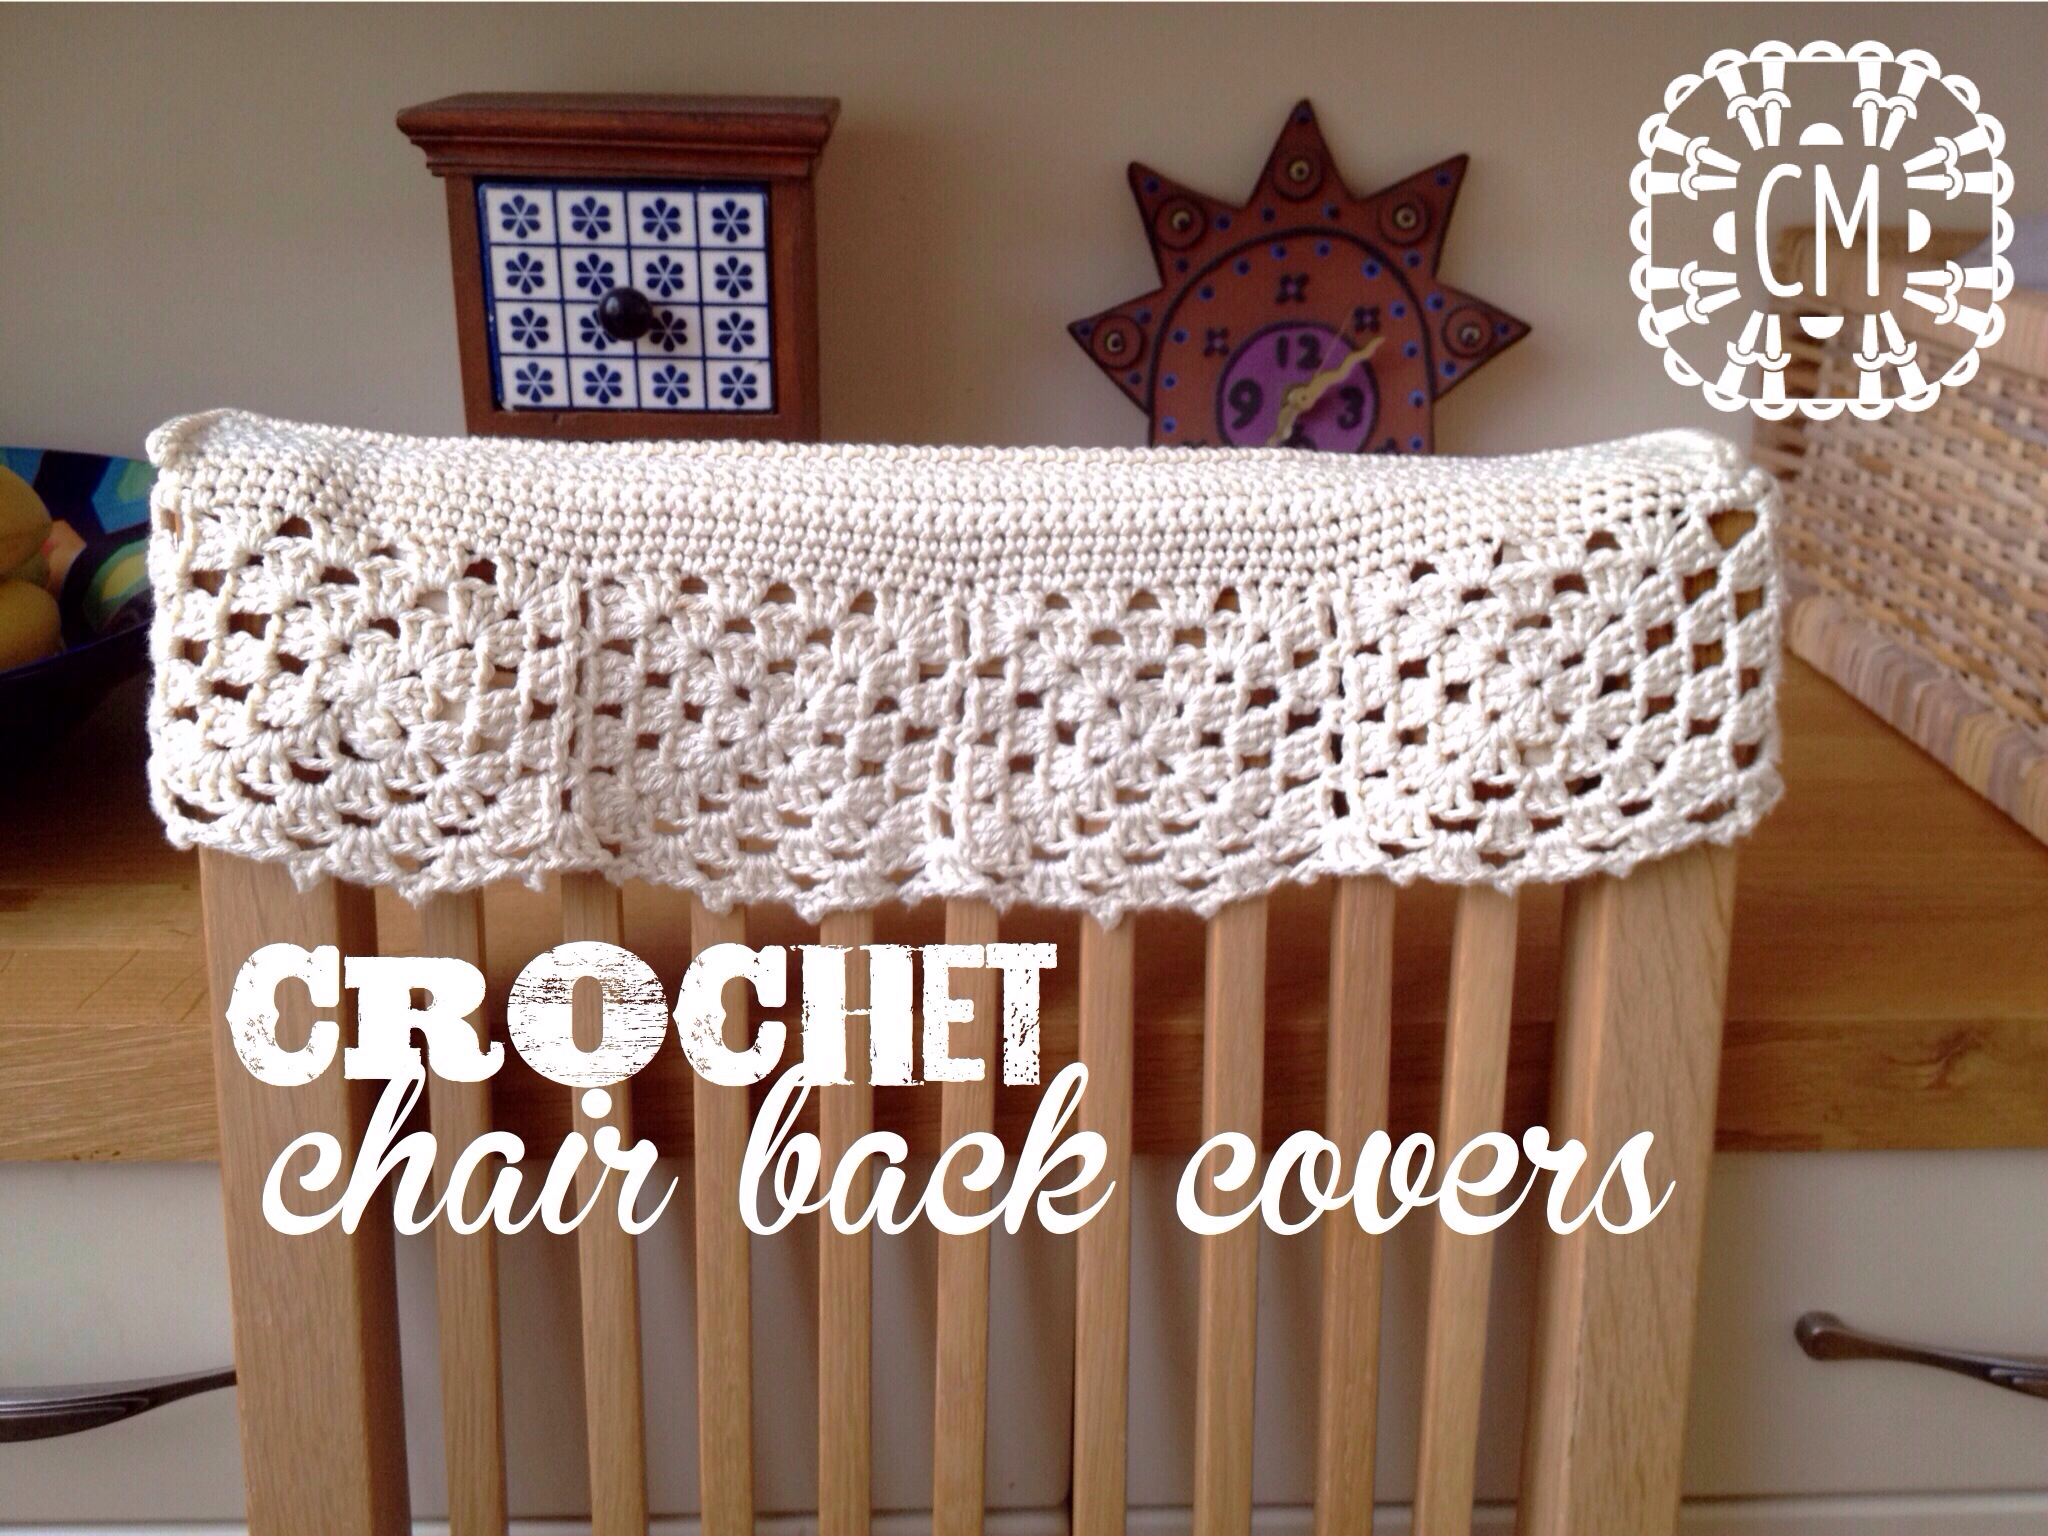 CrochetChairBackCovers